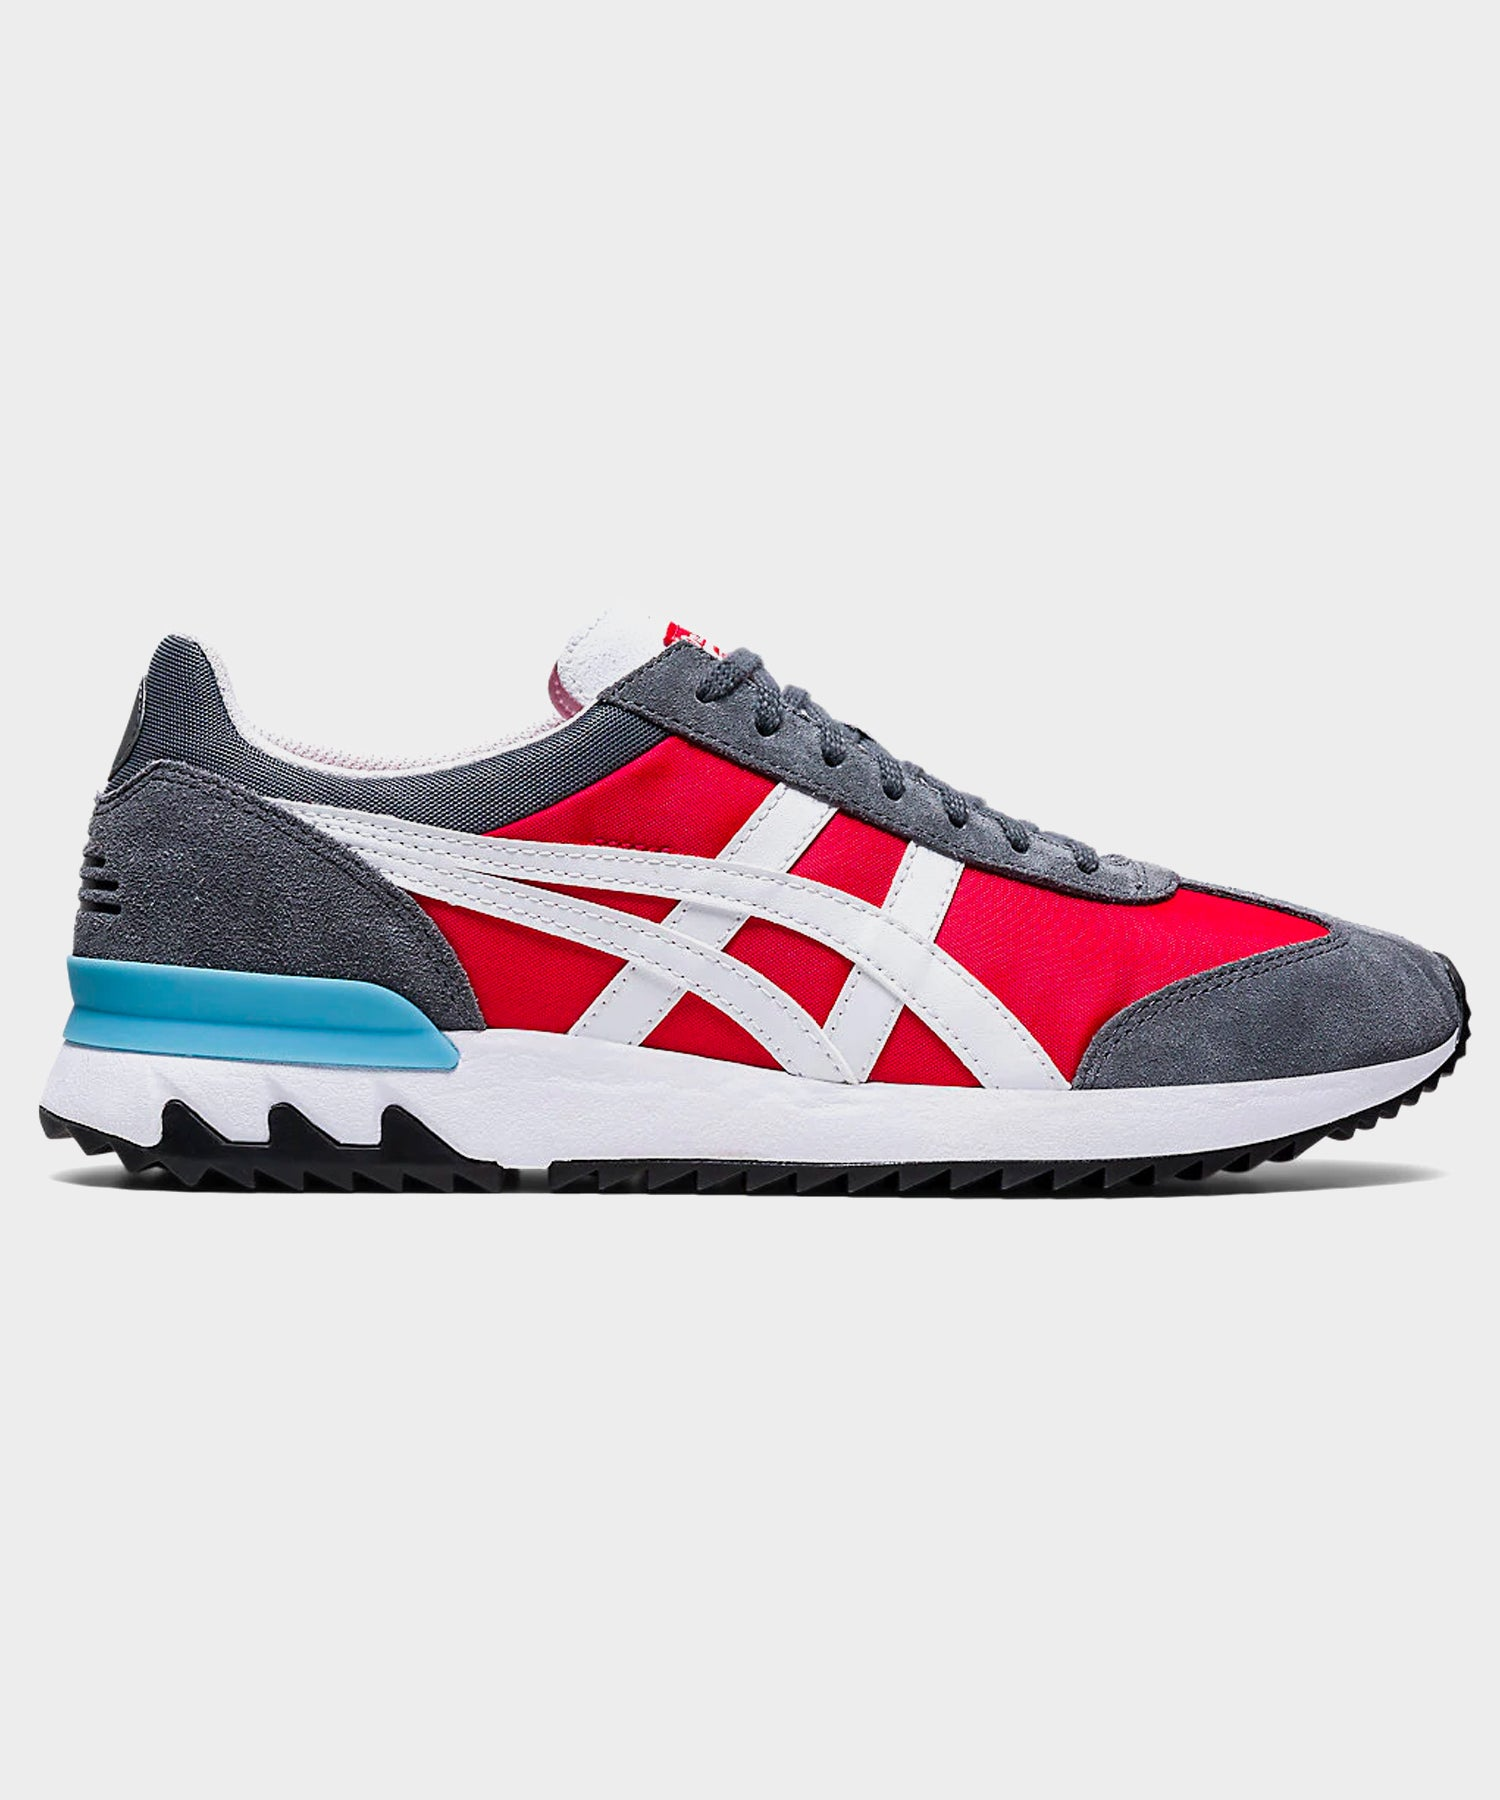 Onitsuka Tiger California 78 in Red